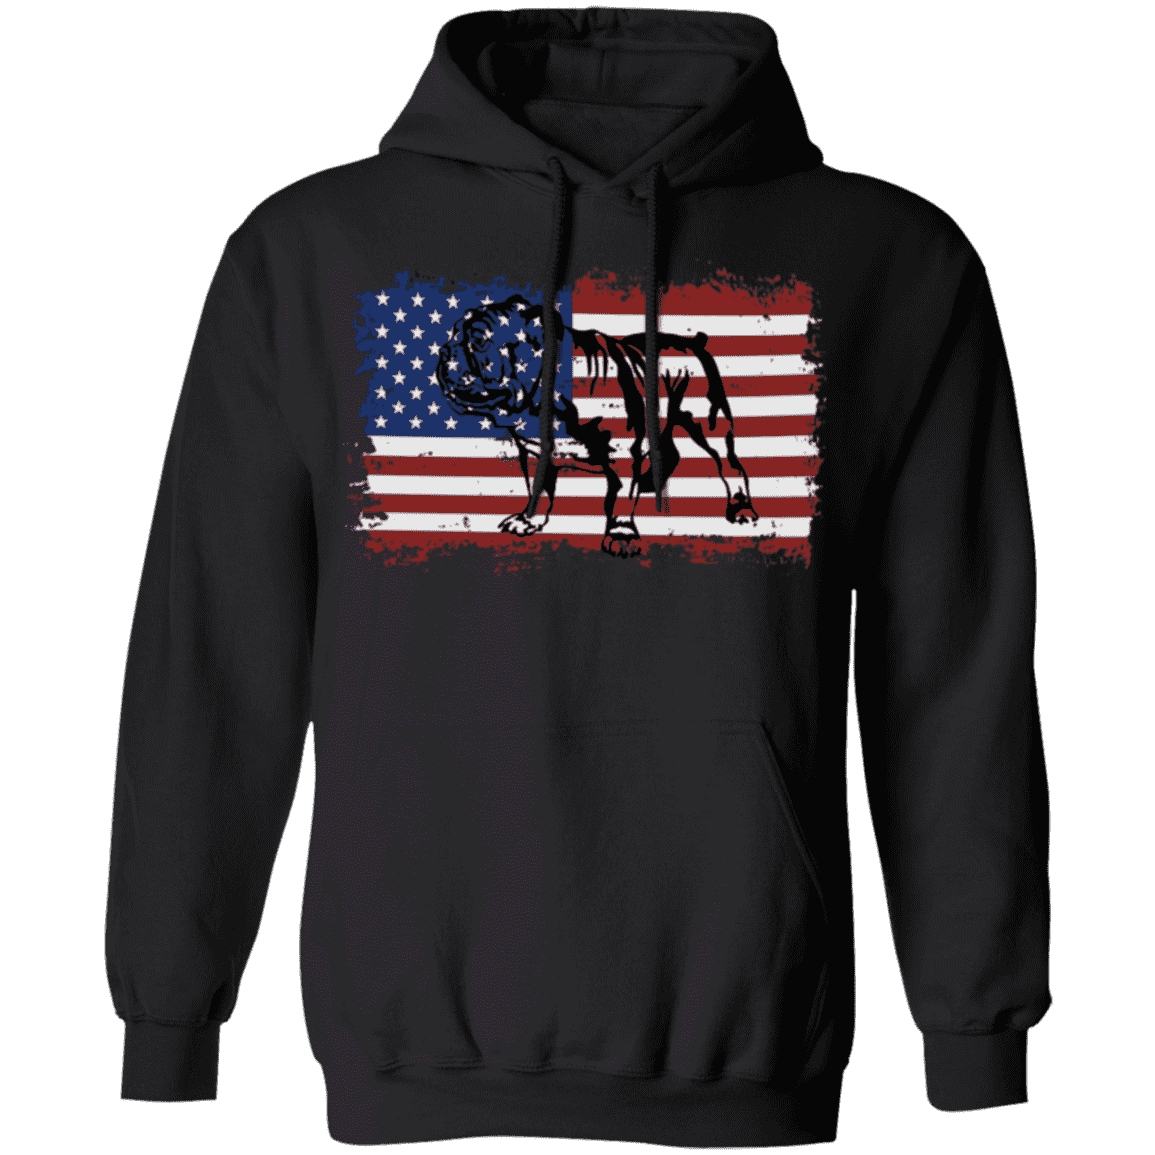 VINTAGE ENGLISH STYLE BULLDOG AMERICAN Pullover Hoodie 8 oz.